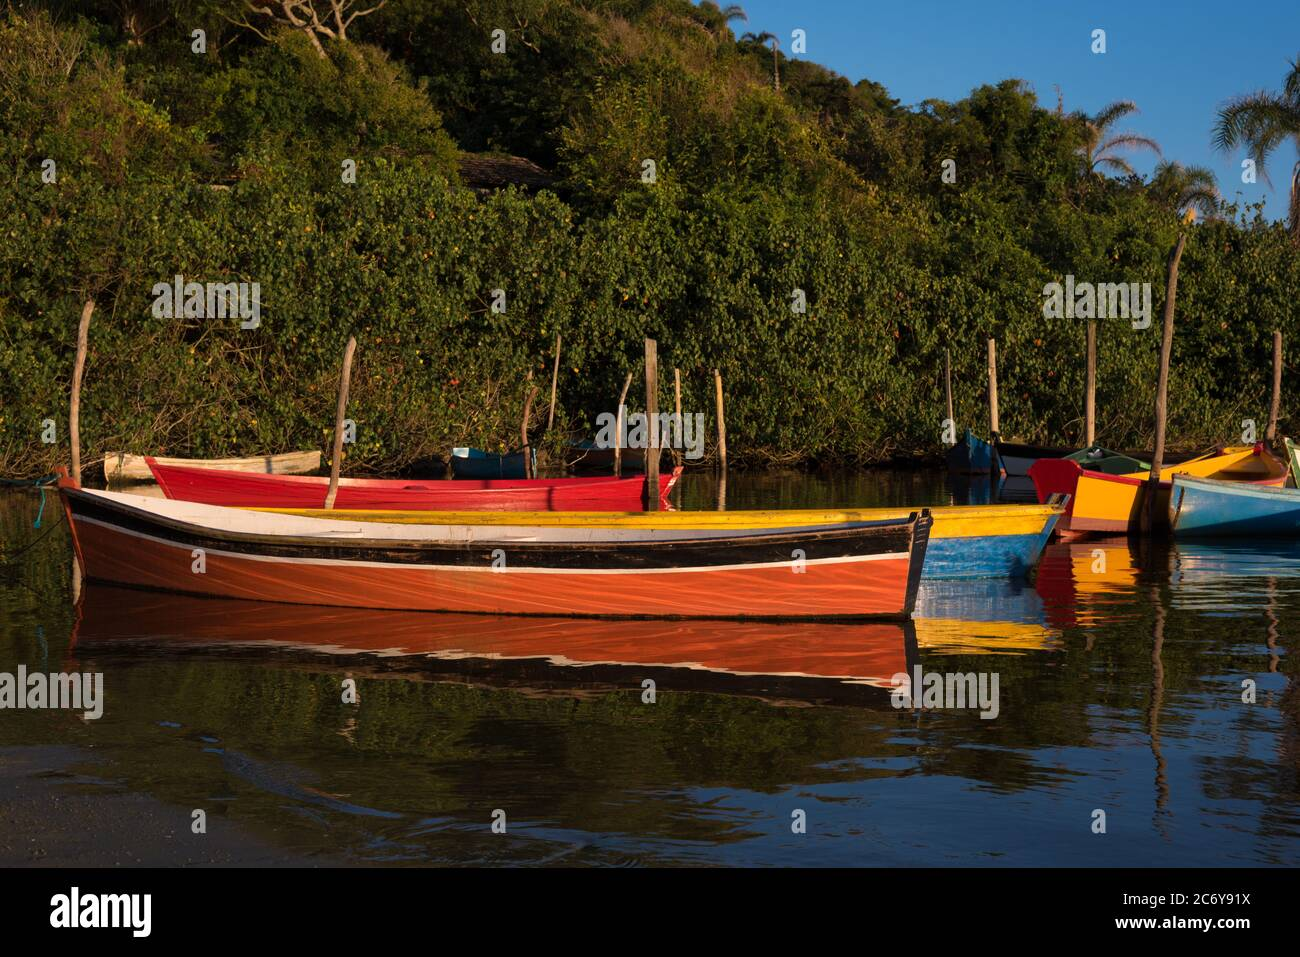 Rowing boats used to transport tourists at Guarda do Embaú Beach Stock Photo